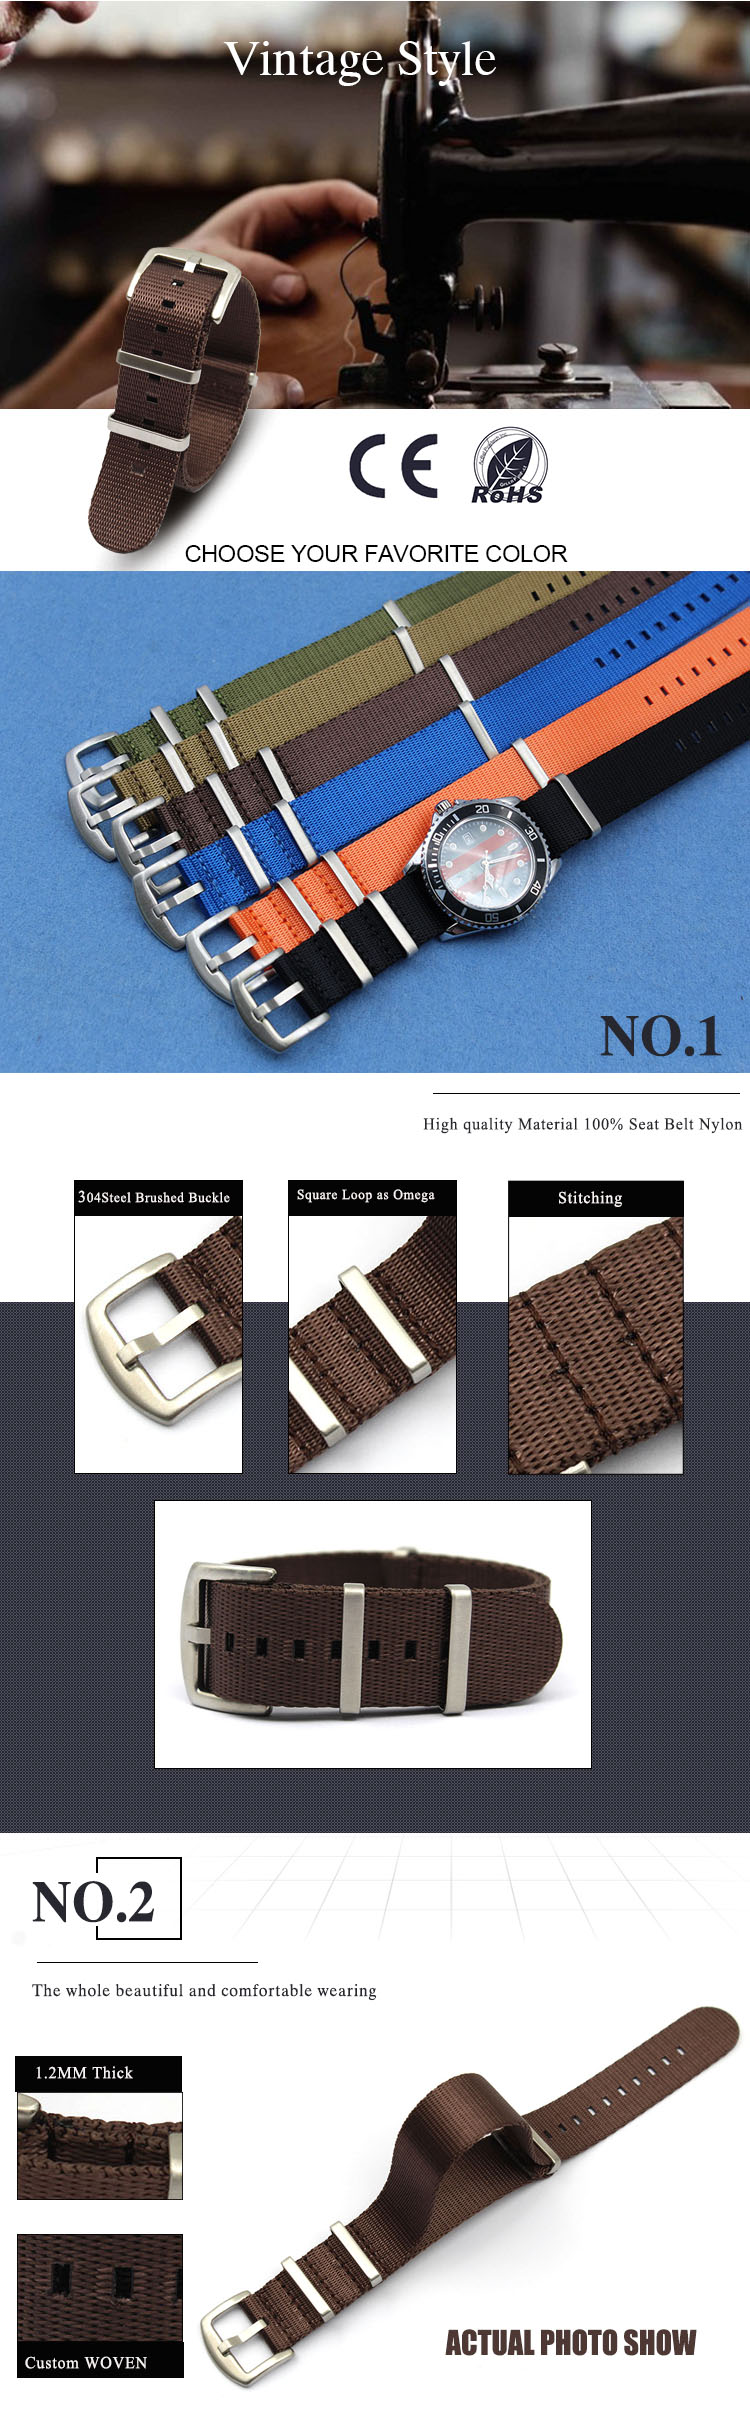 one piece watch strap nylon brown seatbelt Nato